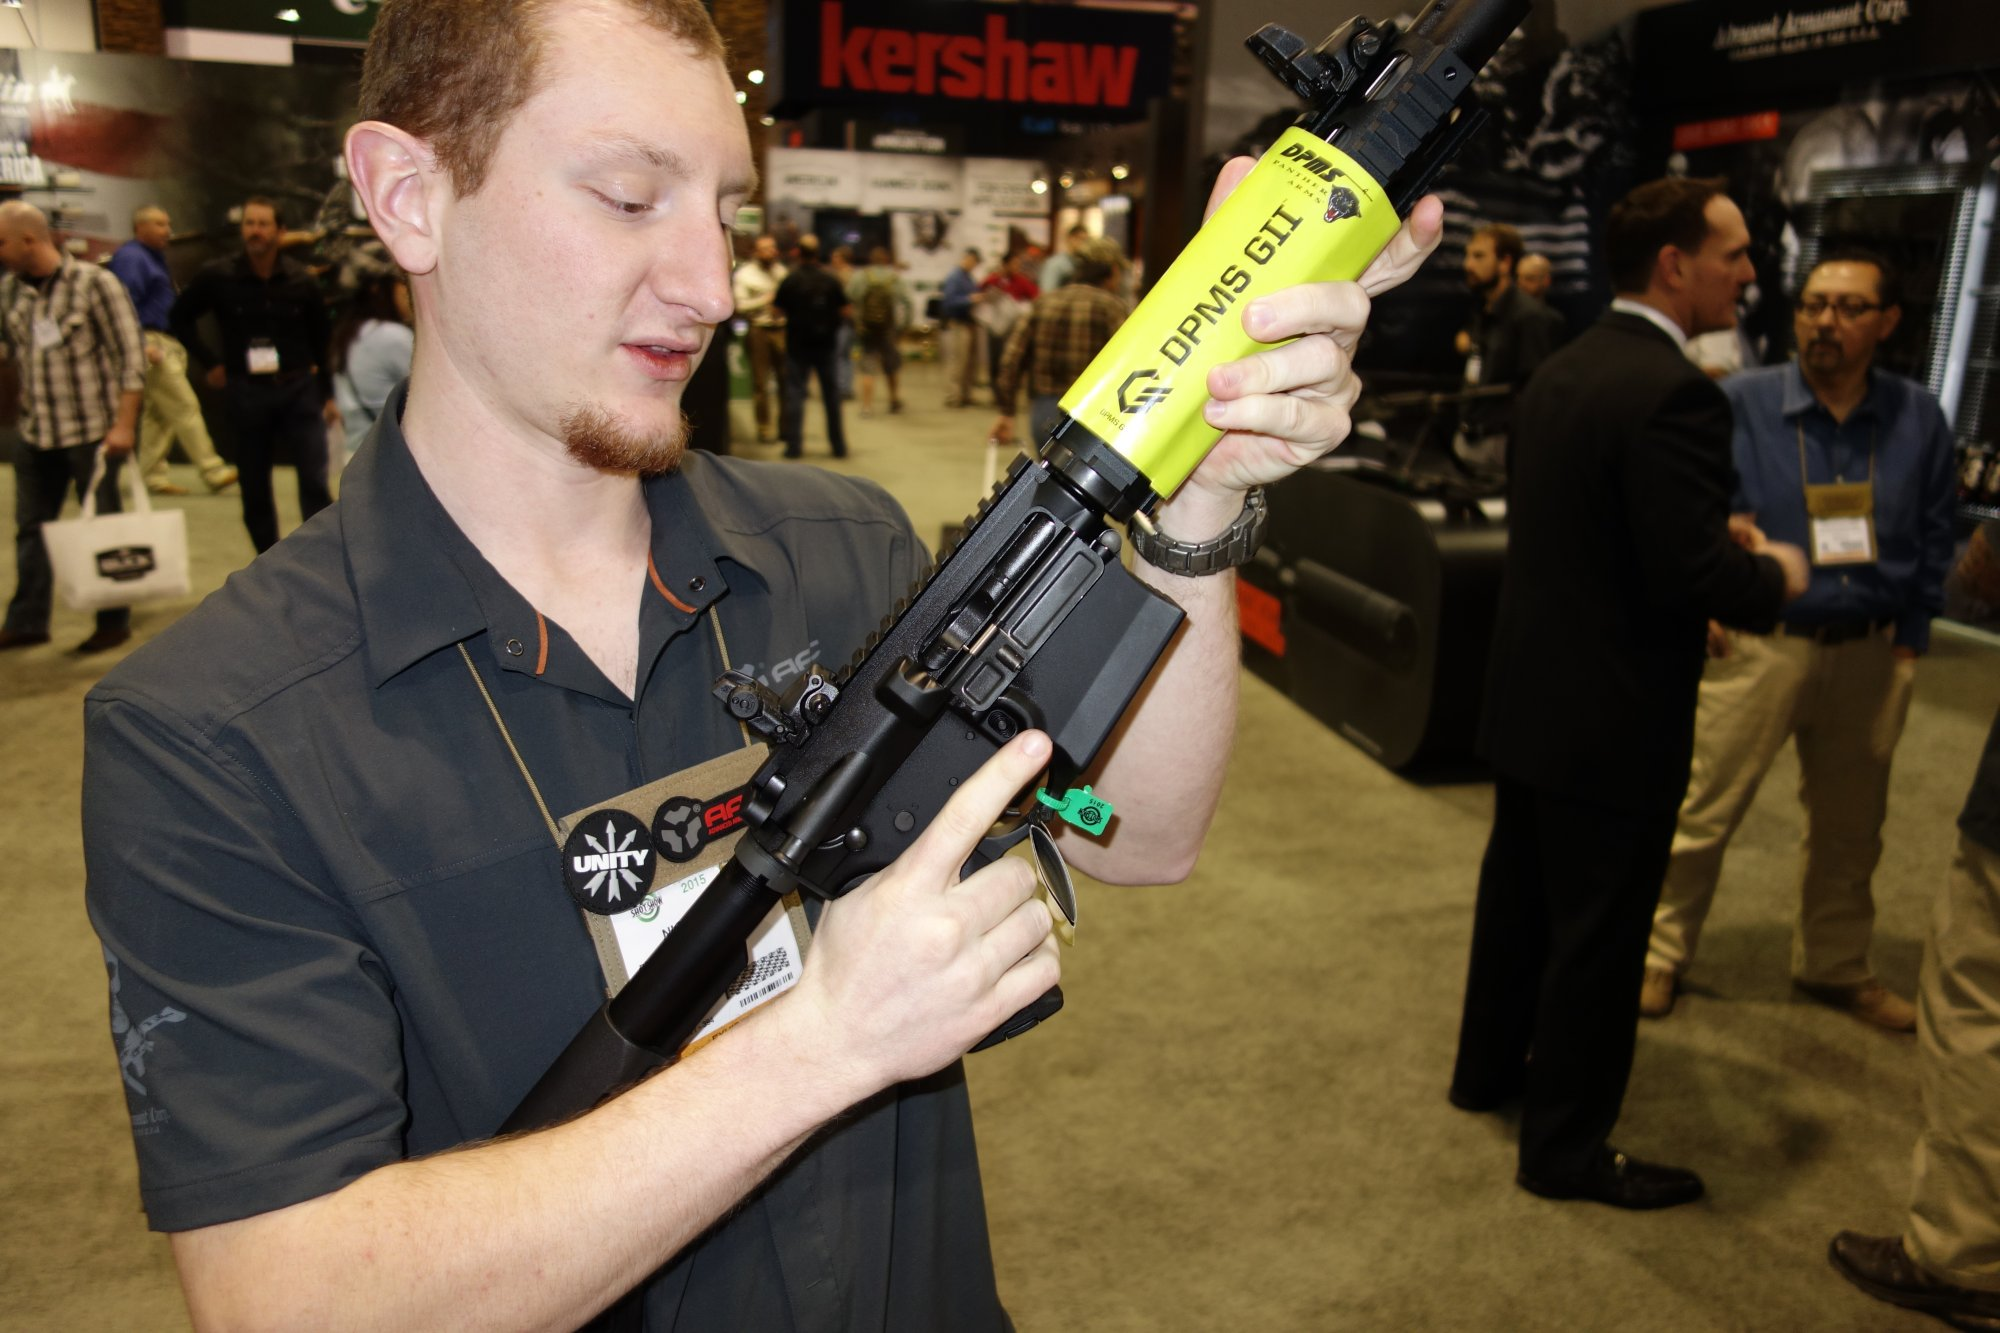 Dpms Panther Arms Gii Recon 308 Msr Nato Win Tactical Ar Rifle Carbine Shot Show David Crane Defensereview Com Dr Remington Hands On Review